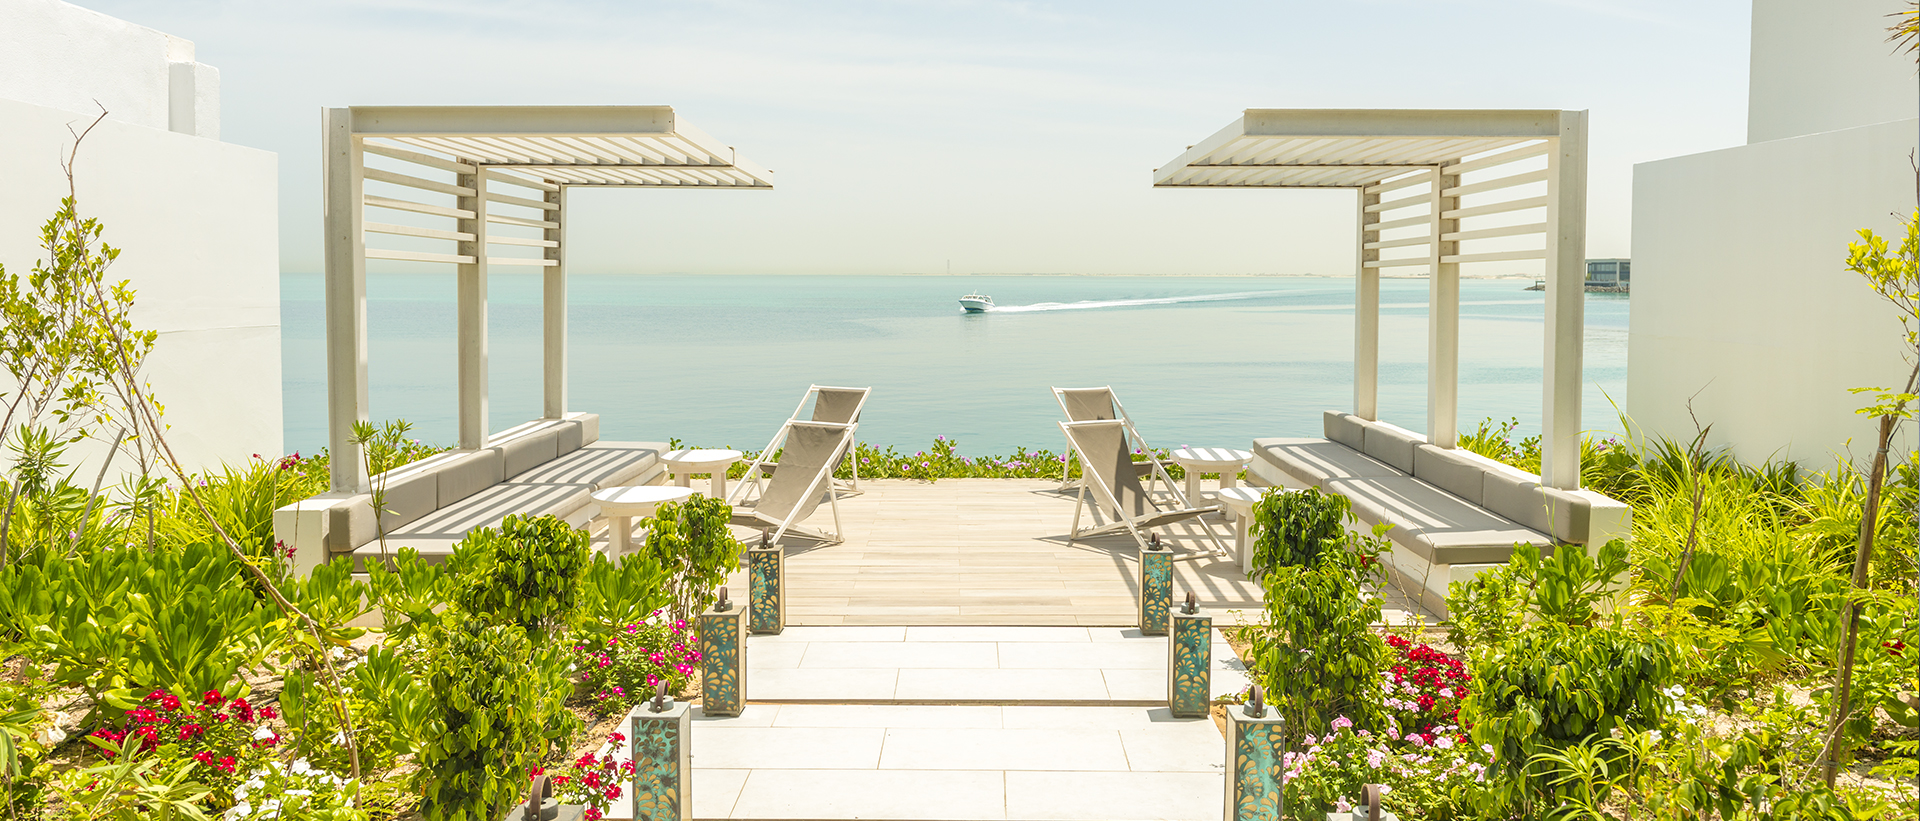 PANORAMIC OCEAN VIEWS AT ZAYA NURAI